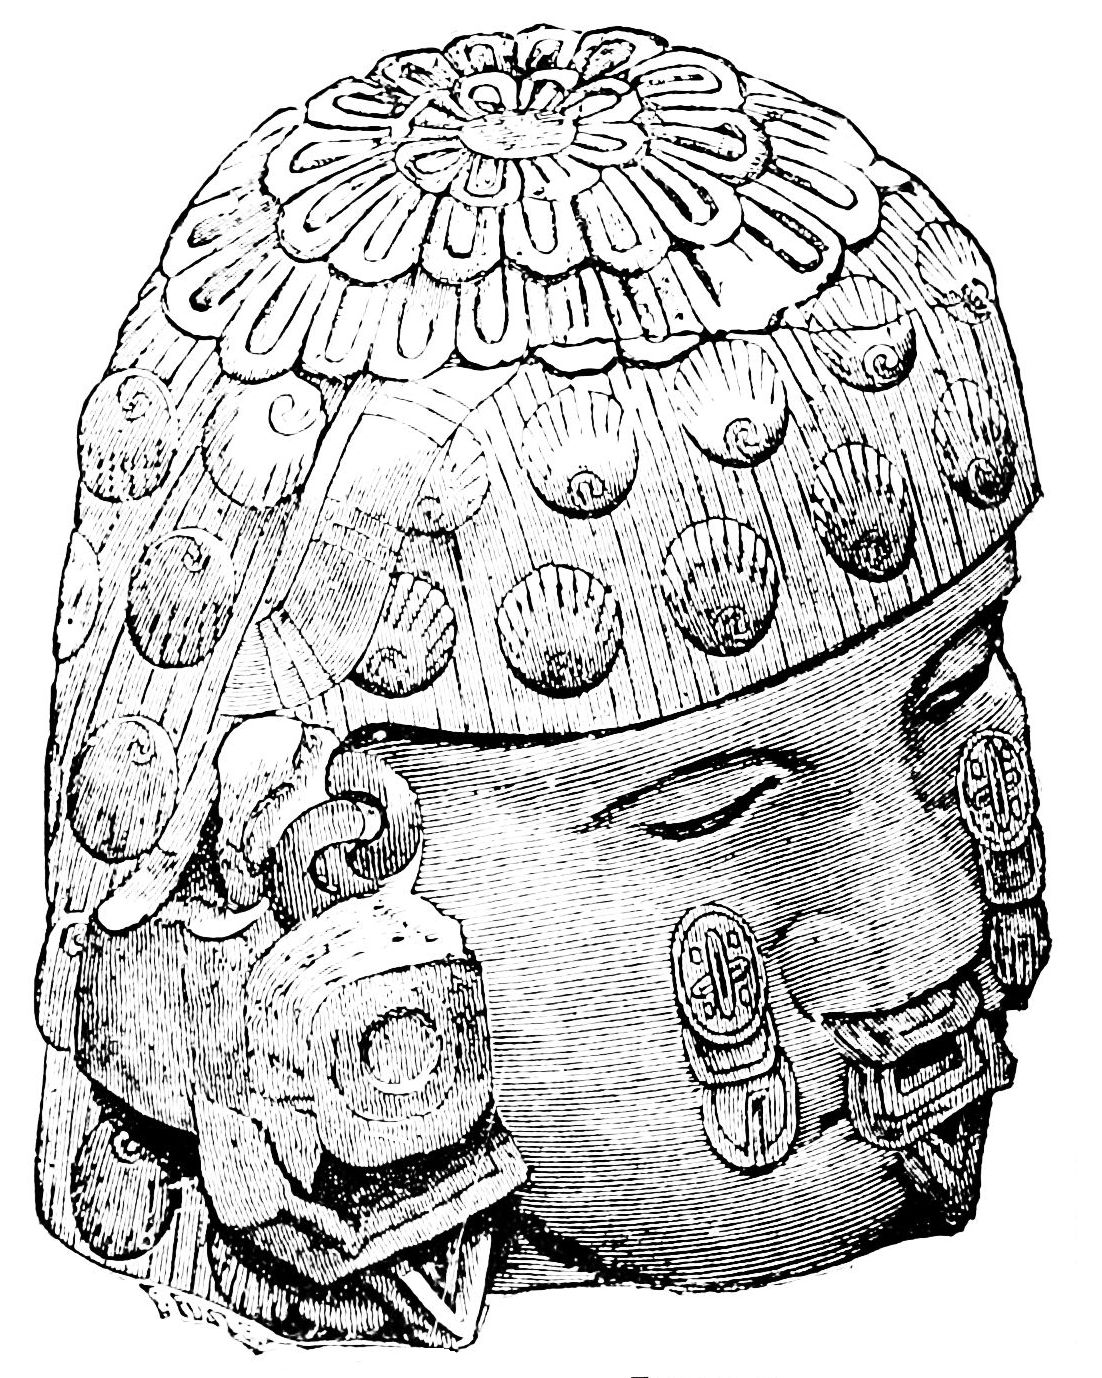 PSM V31 D092 Colossal head of tenango.jpg